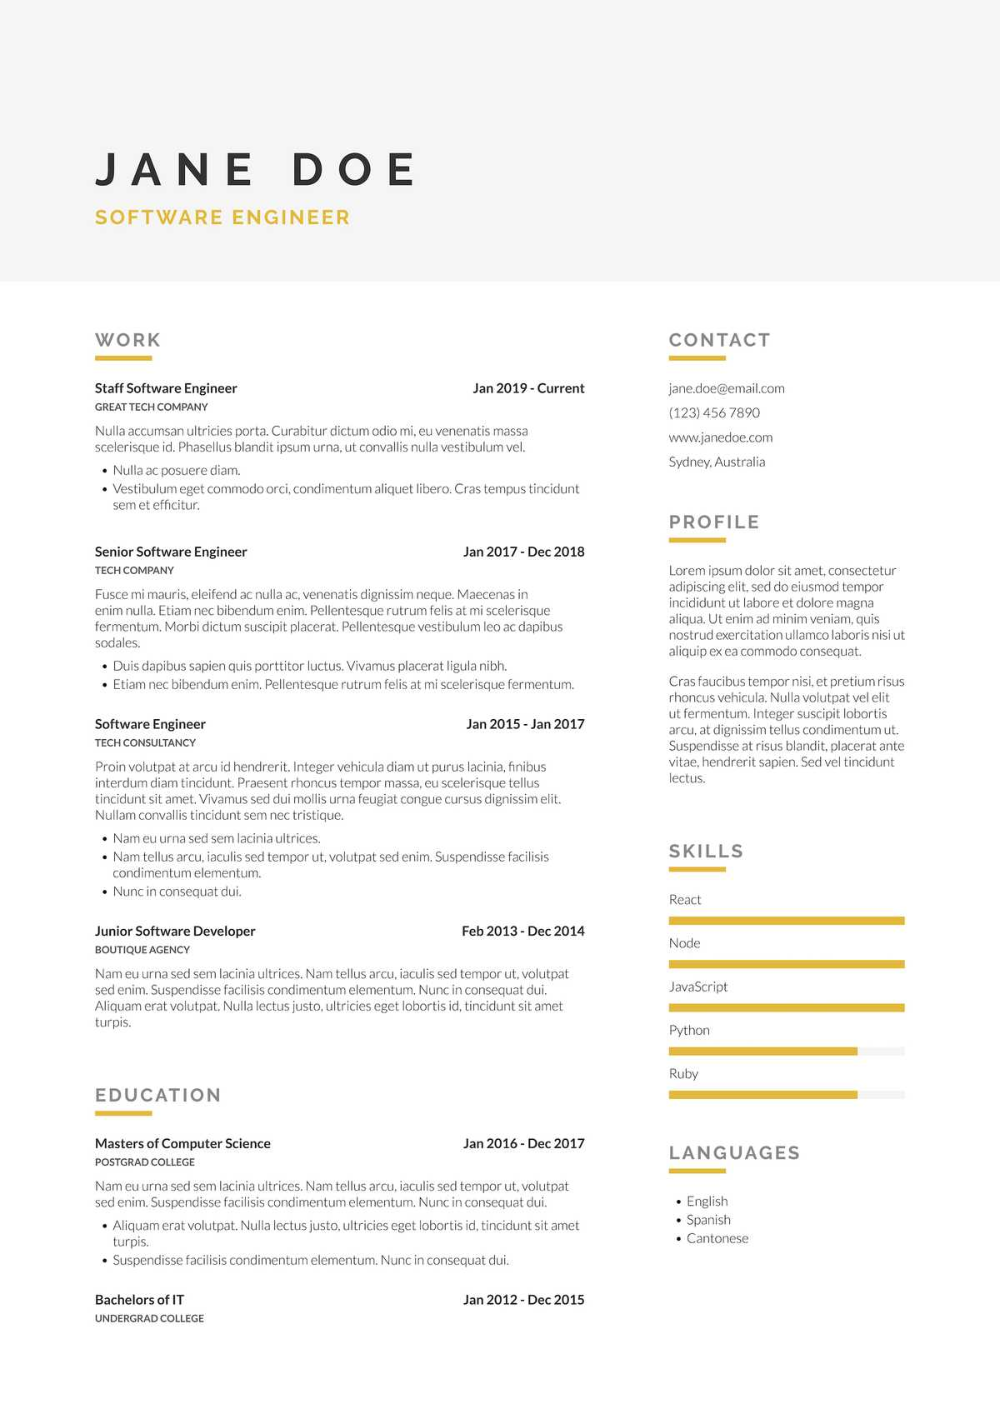 Build better resumes · ippy.io in 2020 Career planning